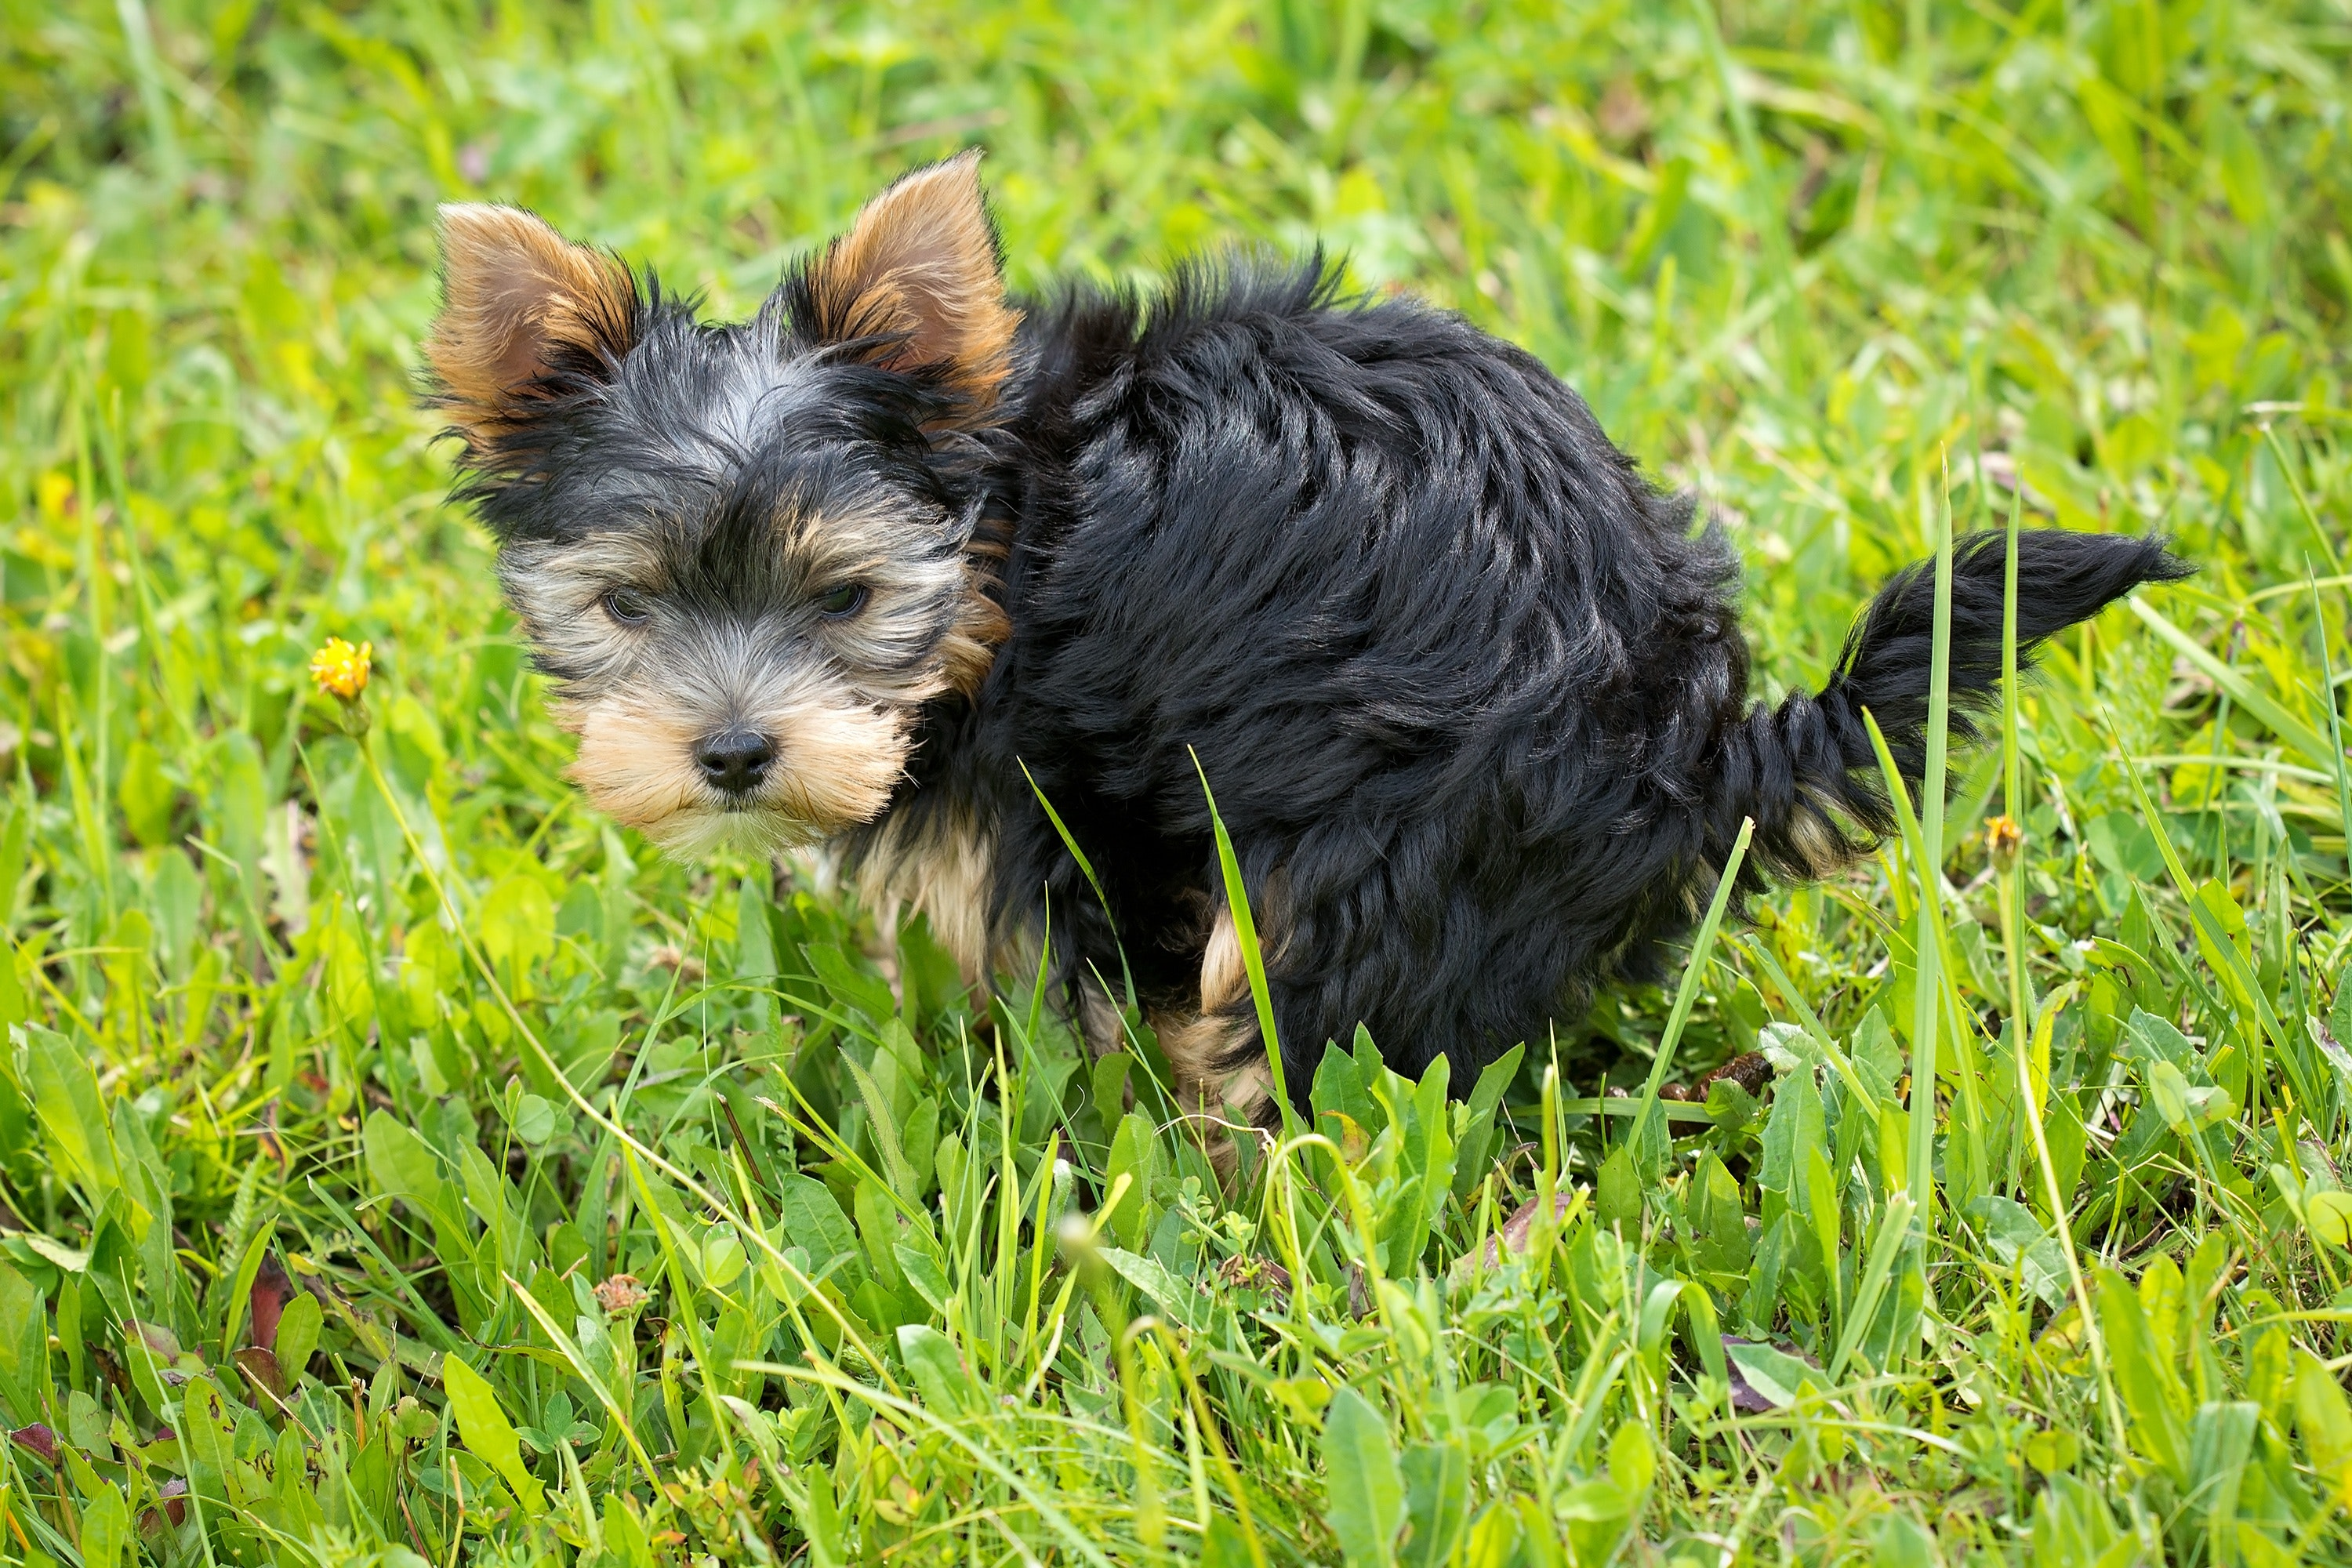 Small black dog pooping in the grass